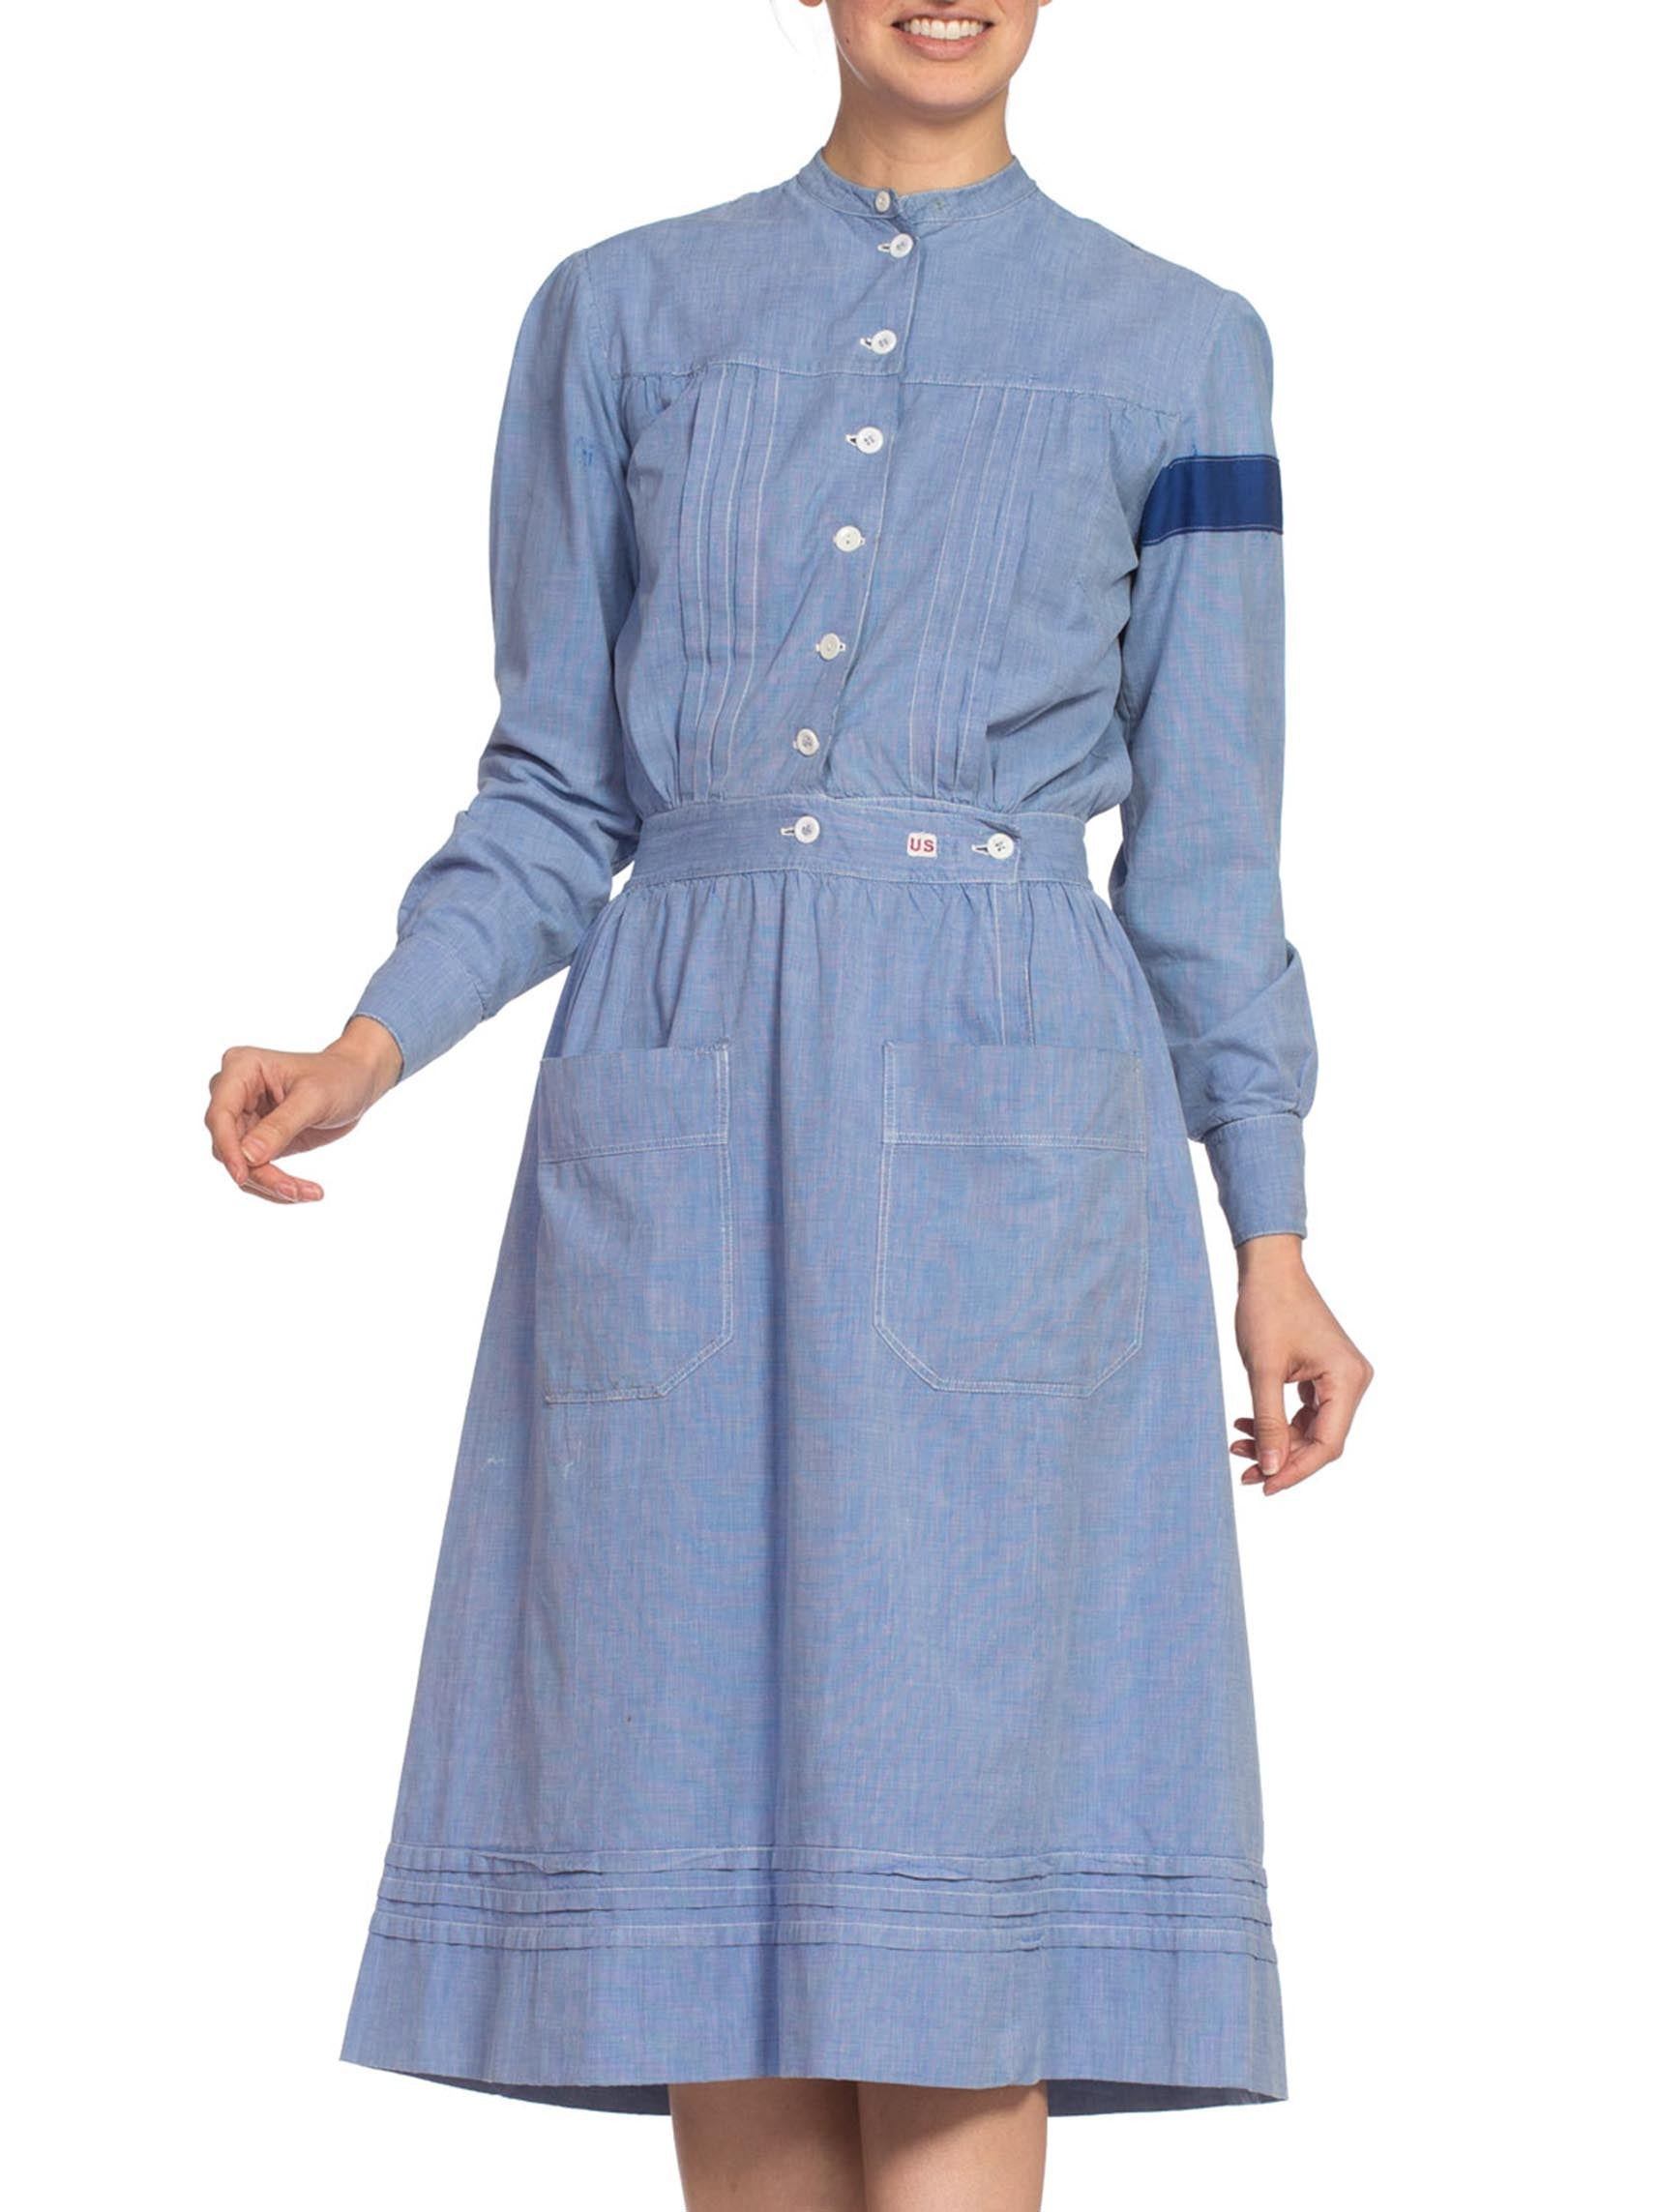 Edwardian Cotton Chambray WWI Authentic War Nurse Uniform Dress